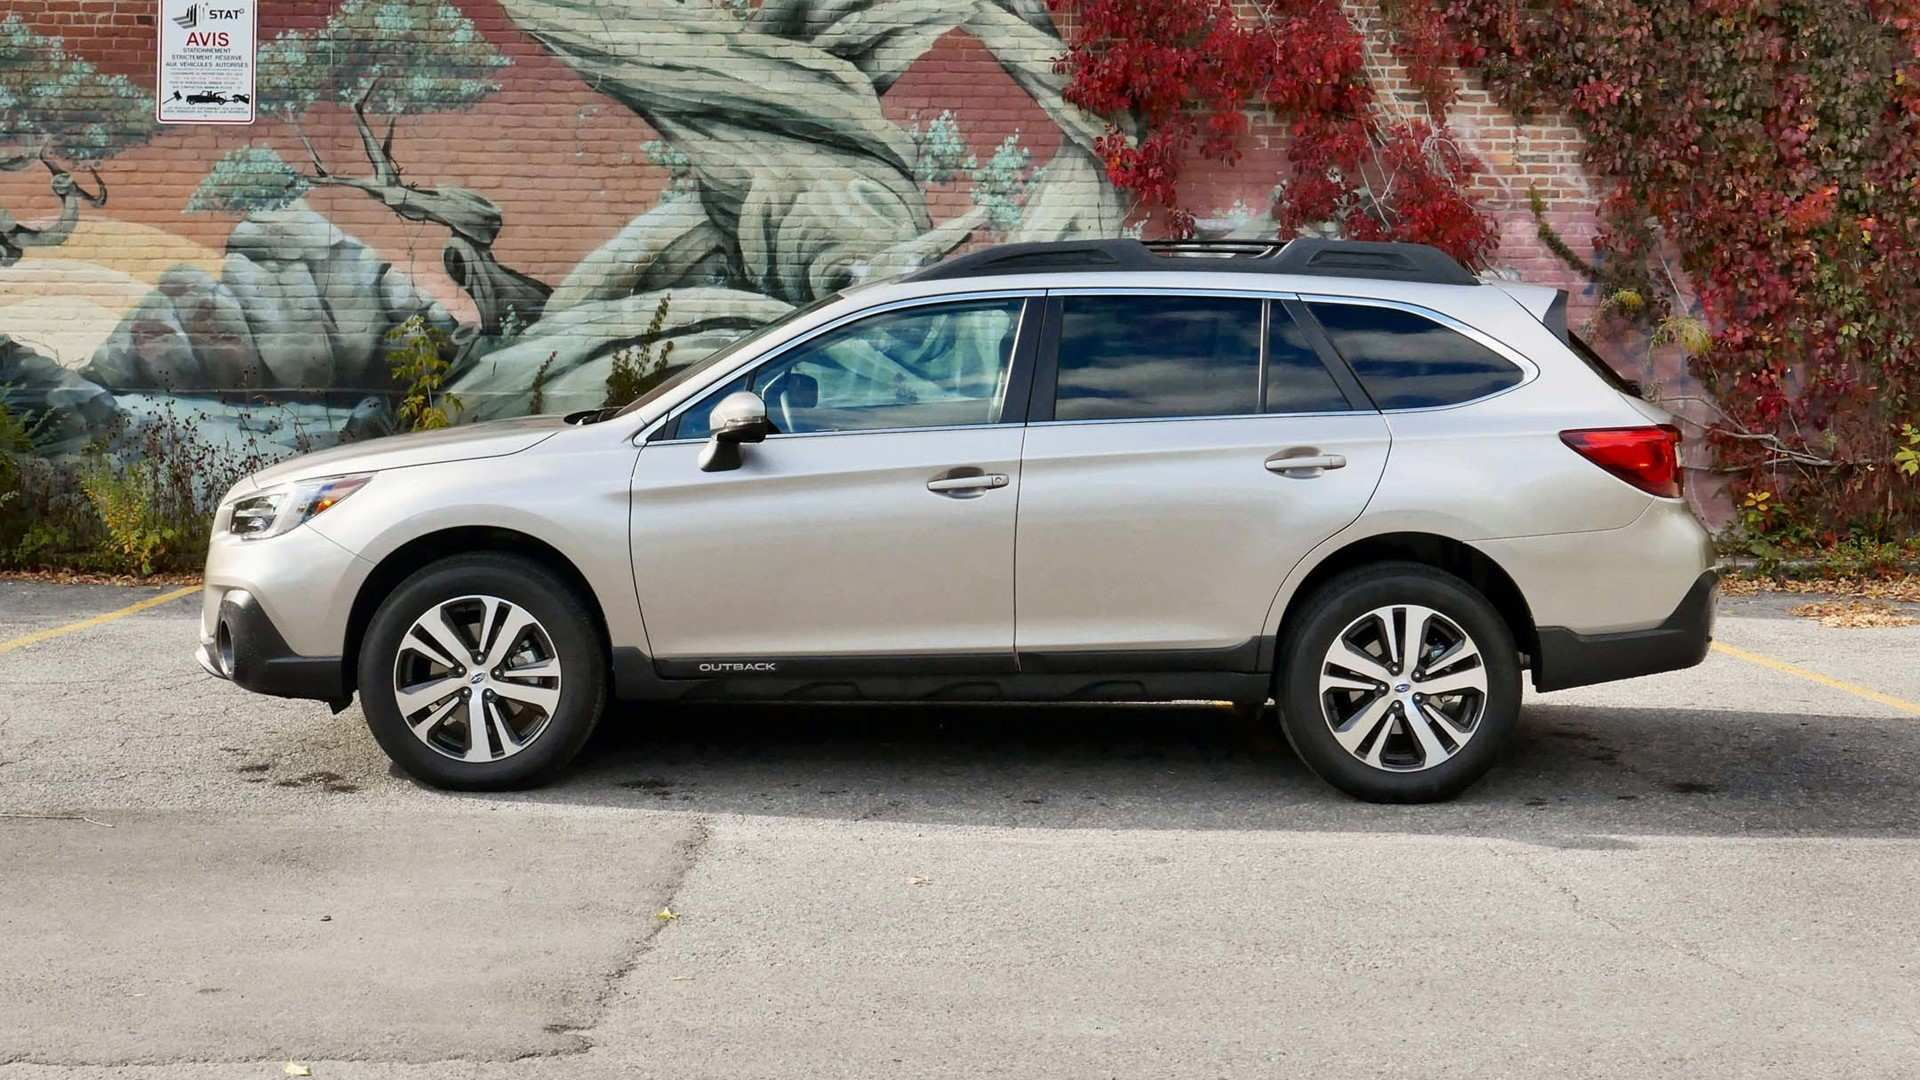 42 New 2019 Subaru Outback Next Generation Speed Test